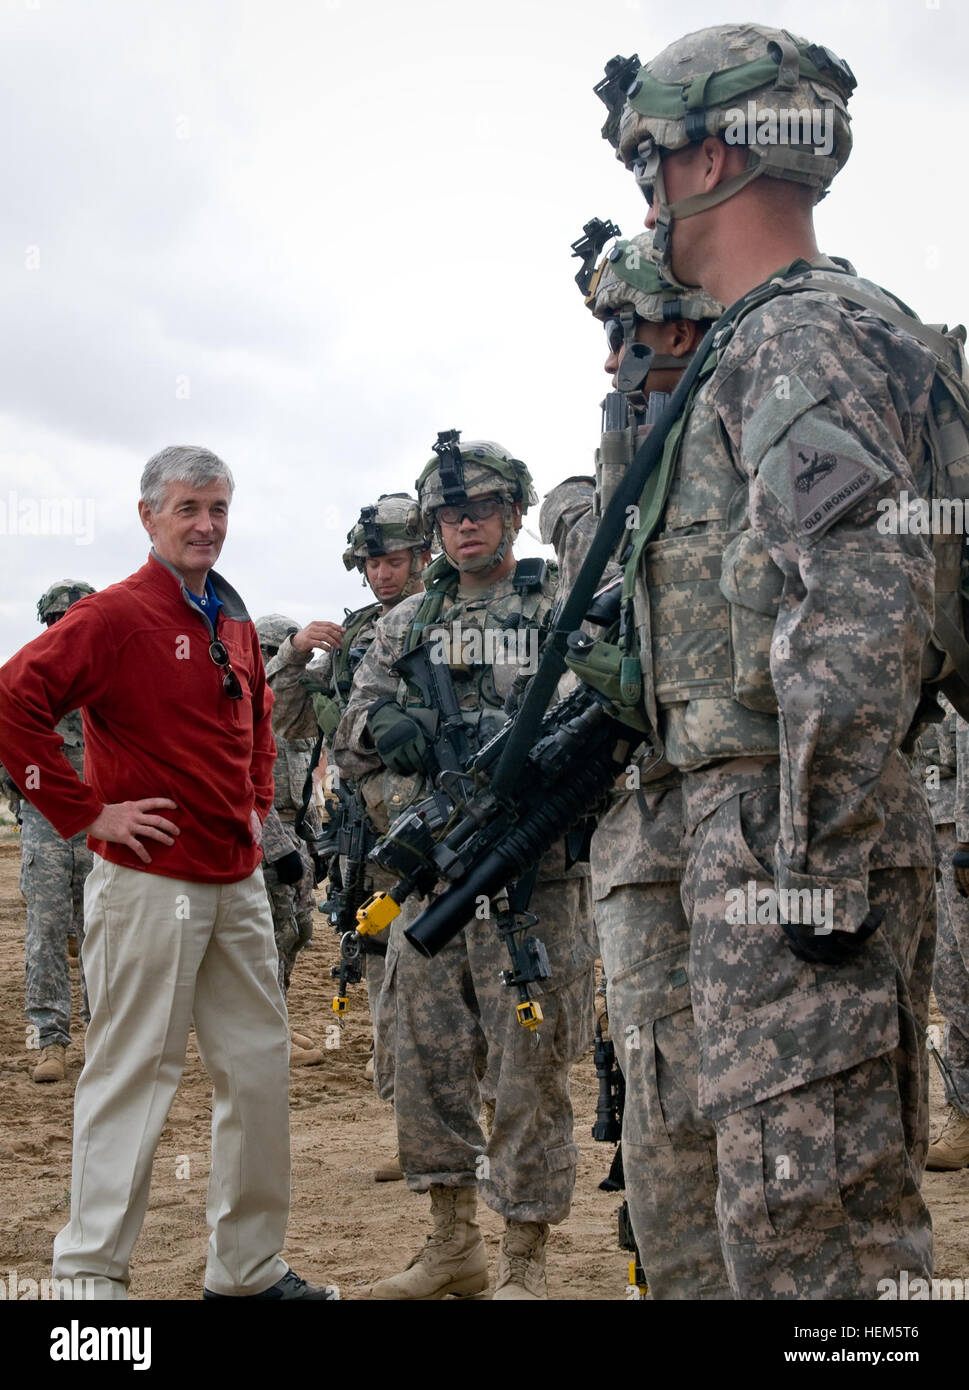 Secretary John McHugh, the 21st secretary of the Army, speaks with 2nd Heavy Brigade Combat Team, 1st Armored Division, Stock Photo